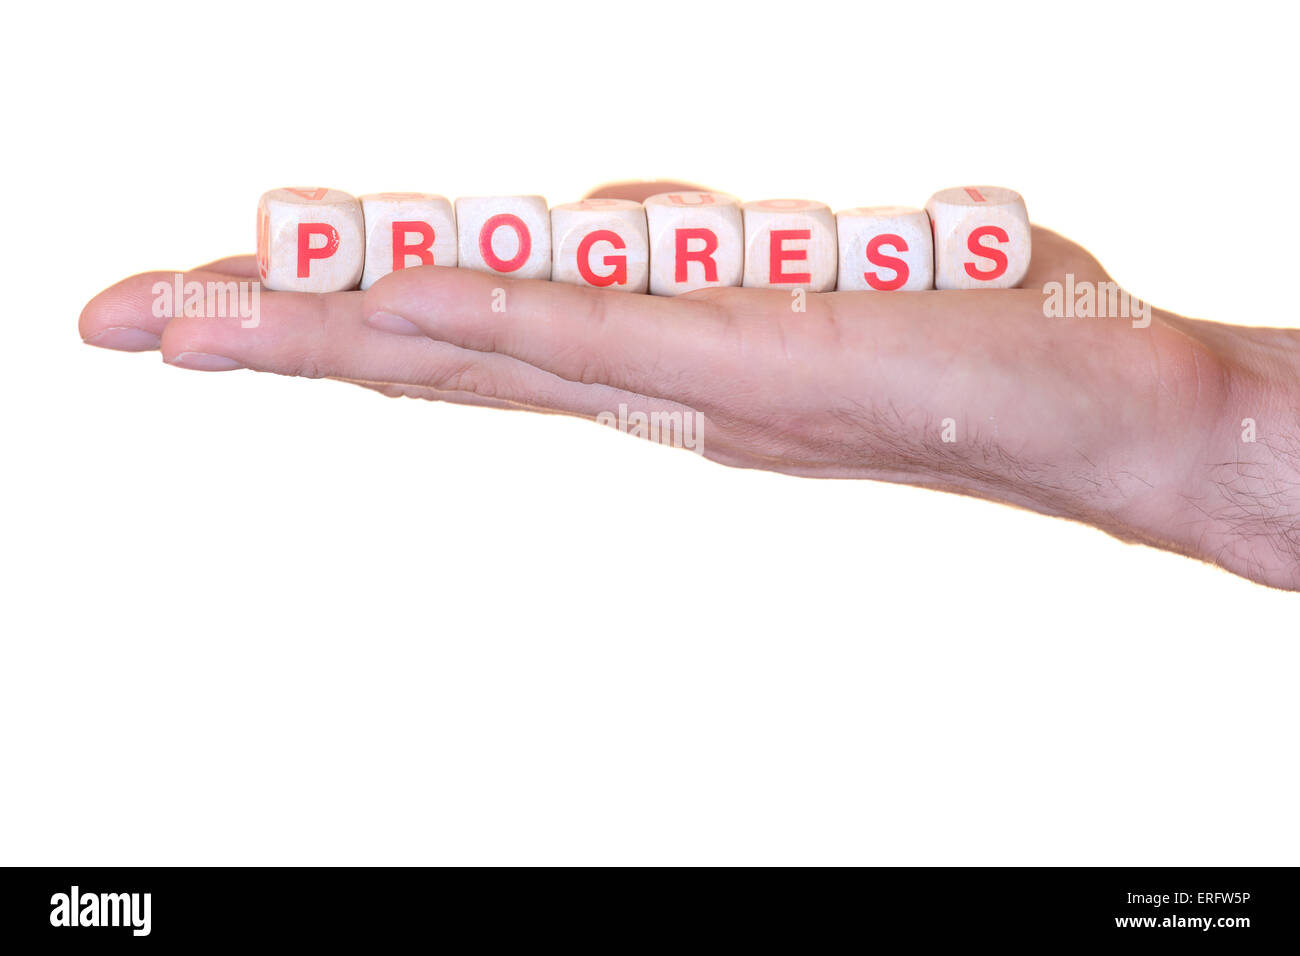 The word progress written with wooden dice on the he palm of the hand. Isolated on white background - Stock Image